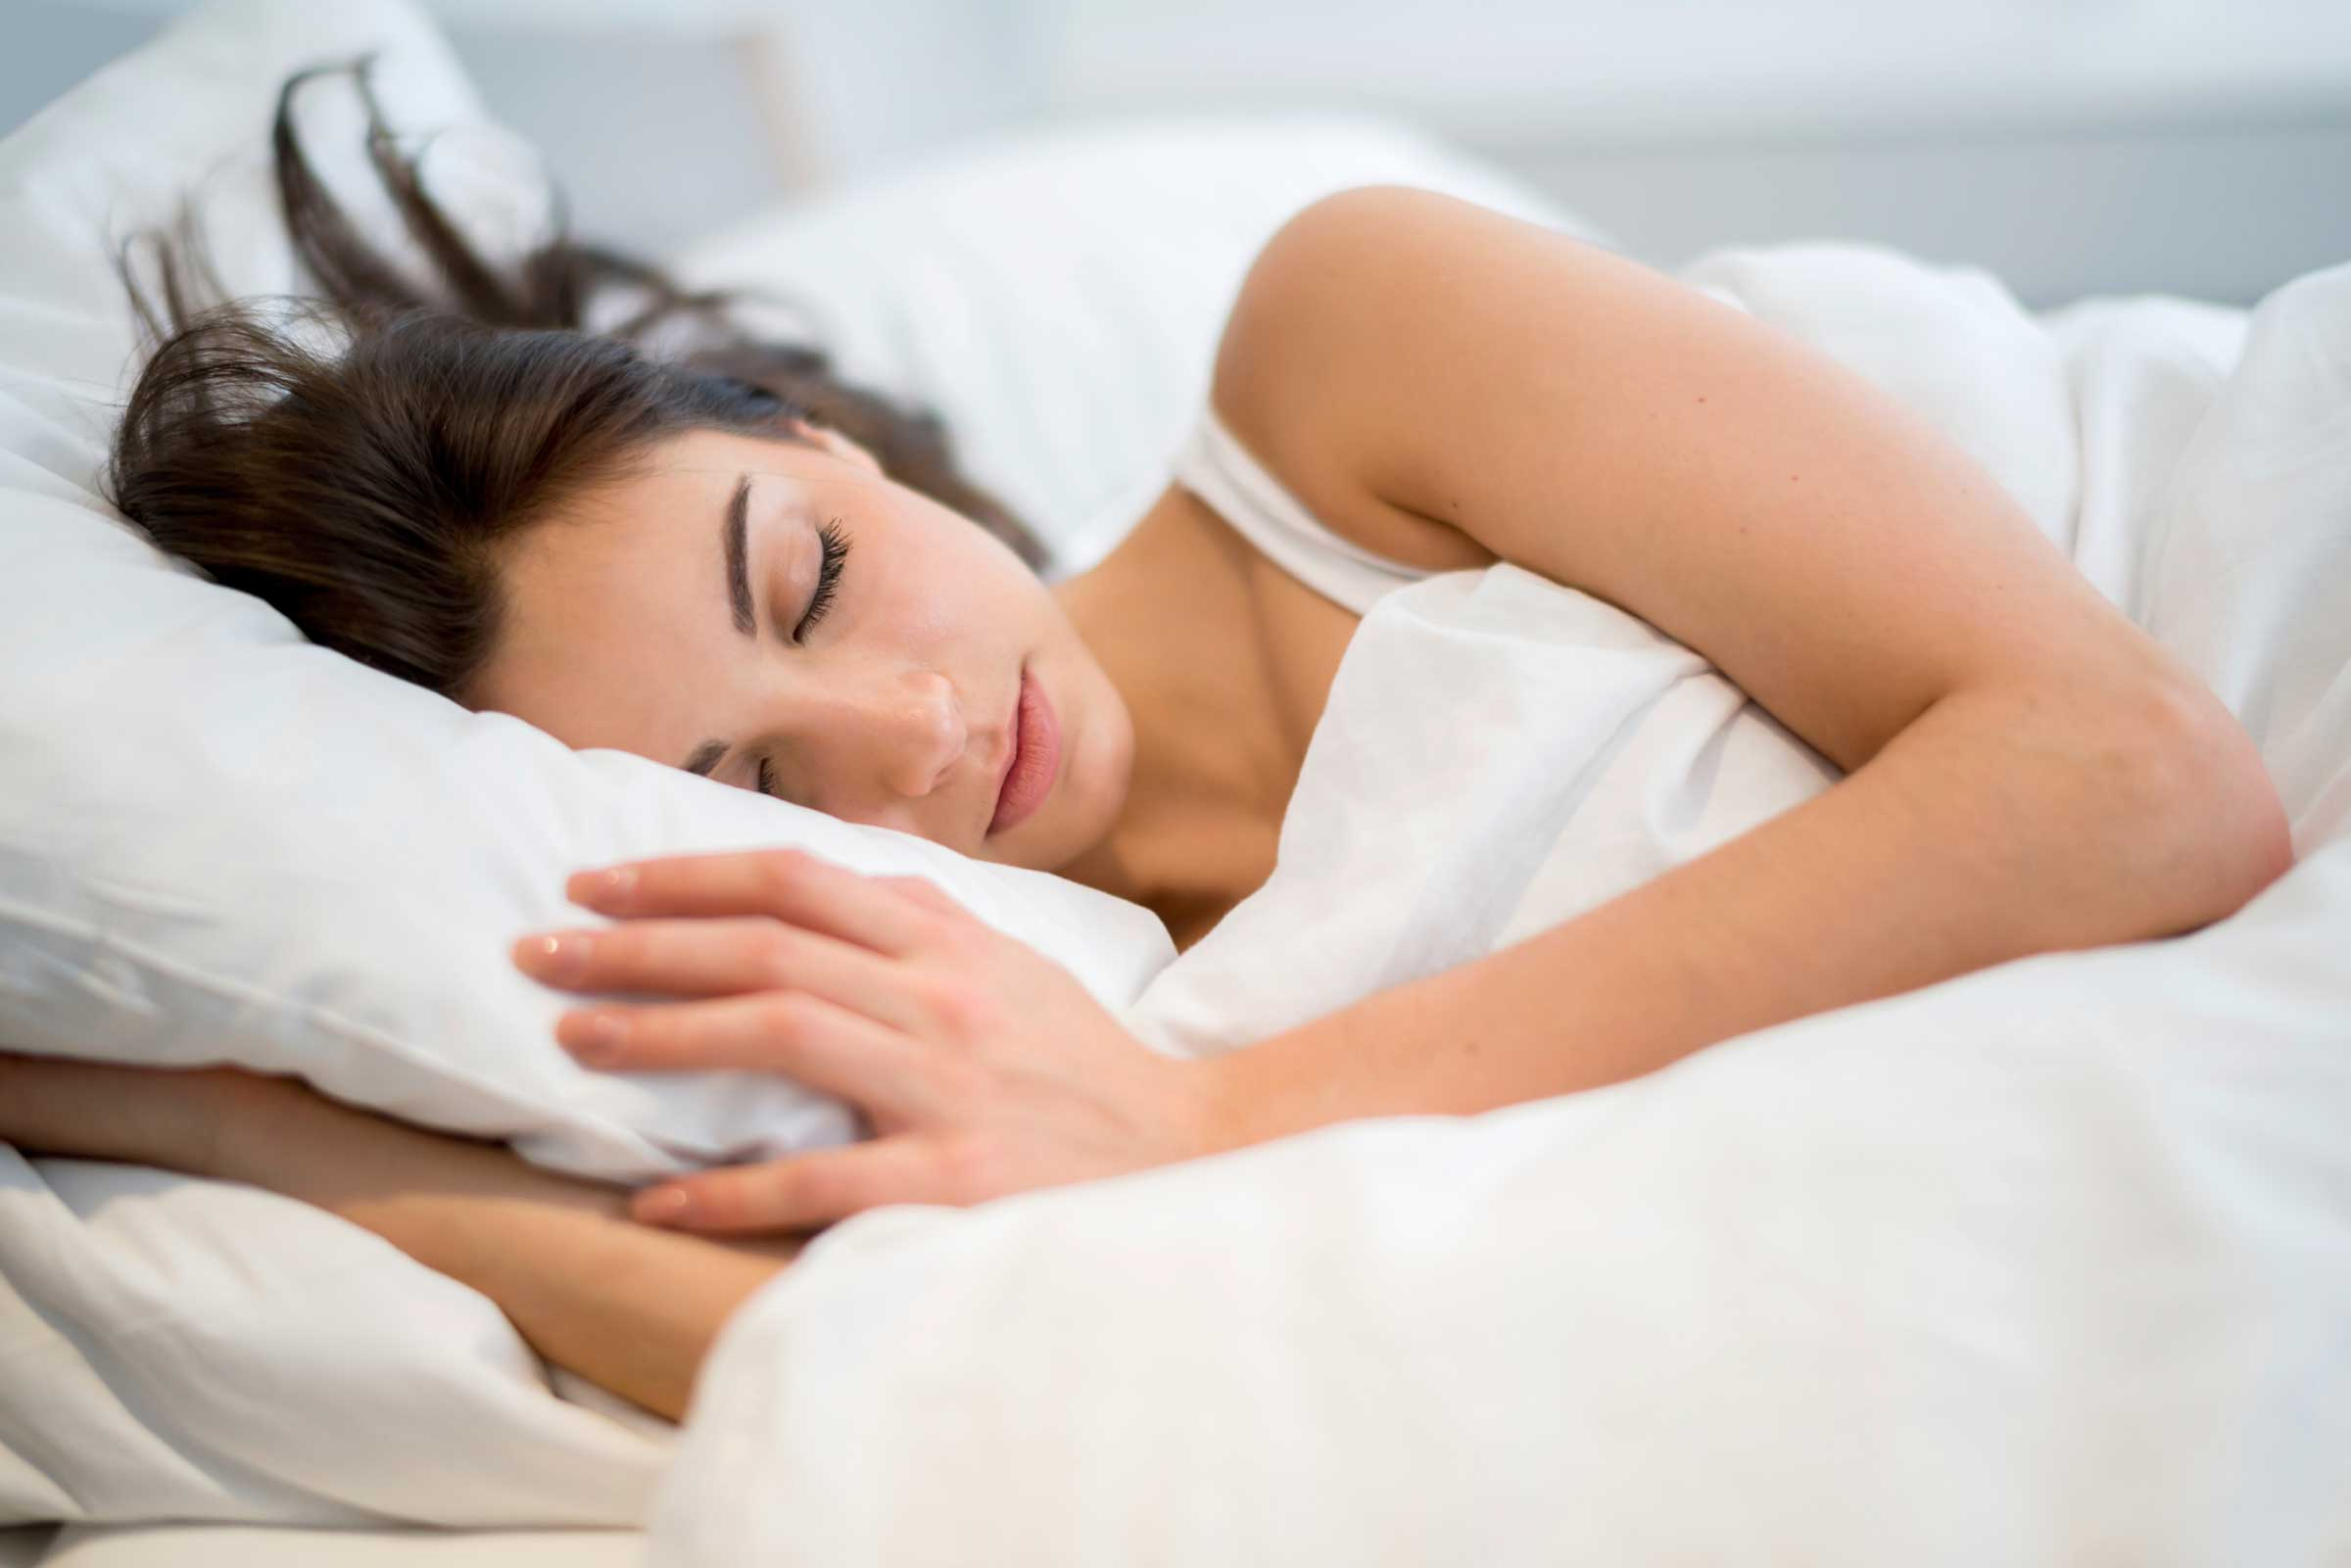 Recommended use of sublingual melatonin